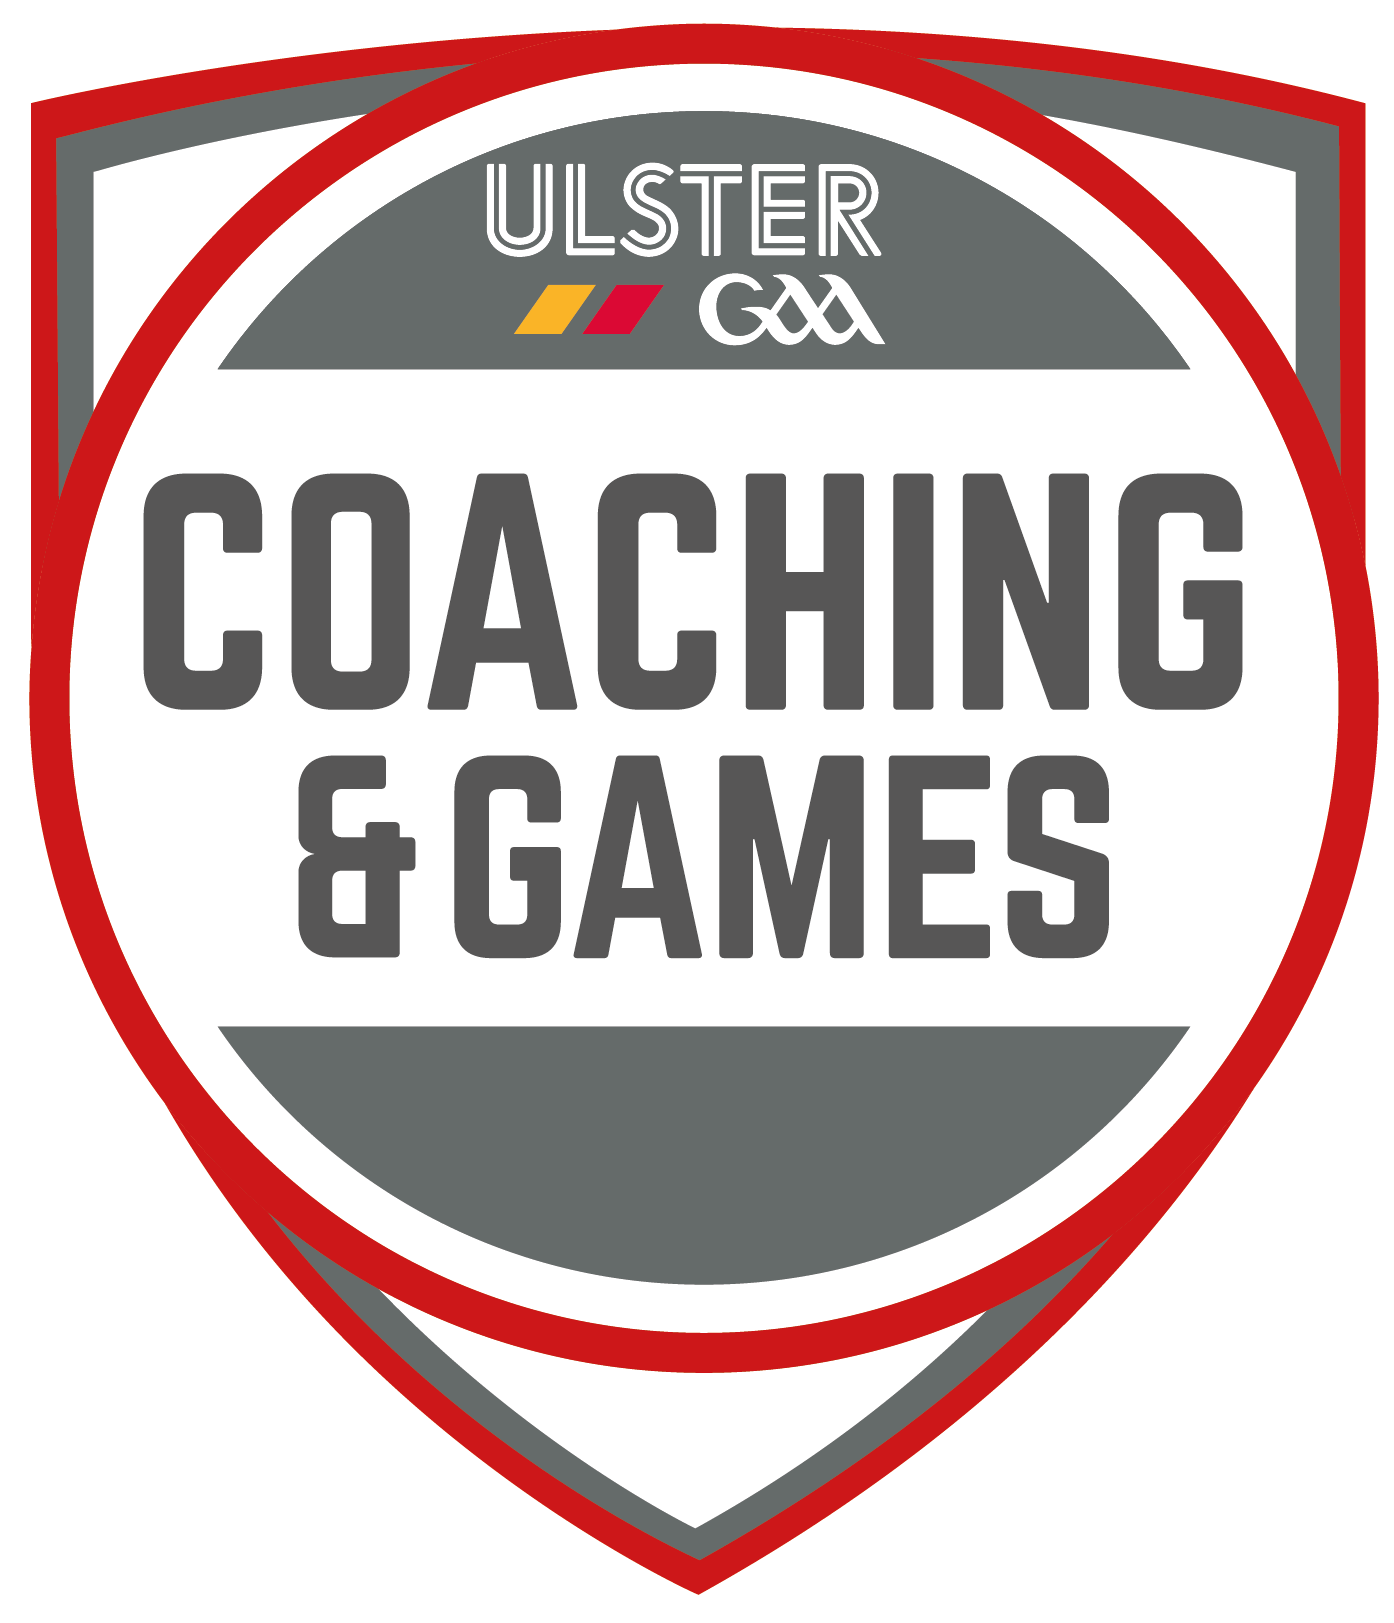 Ulster Coaching & Games Microsite